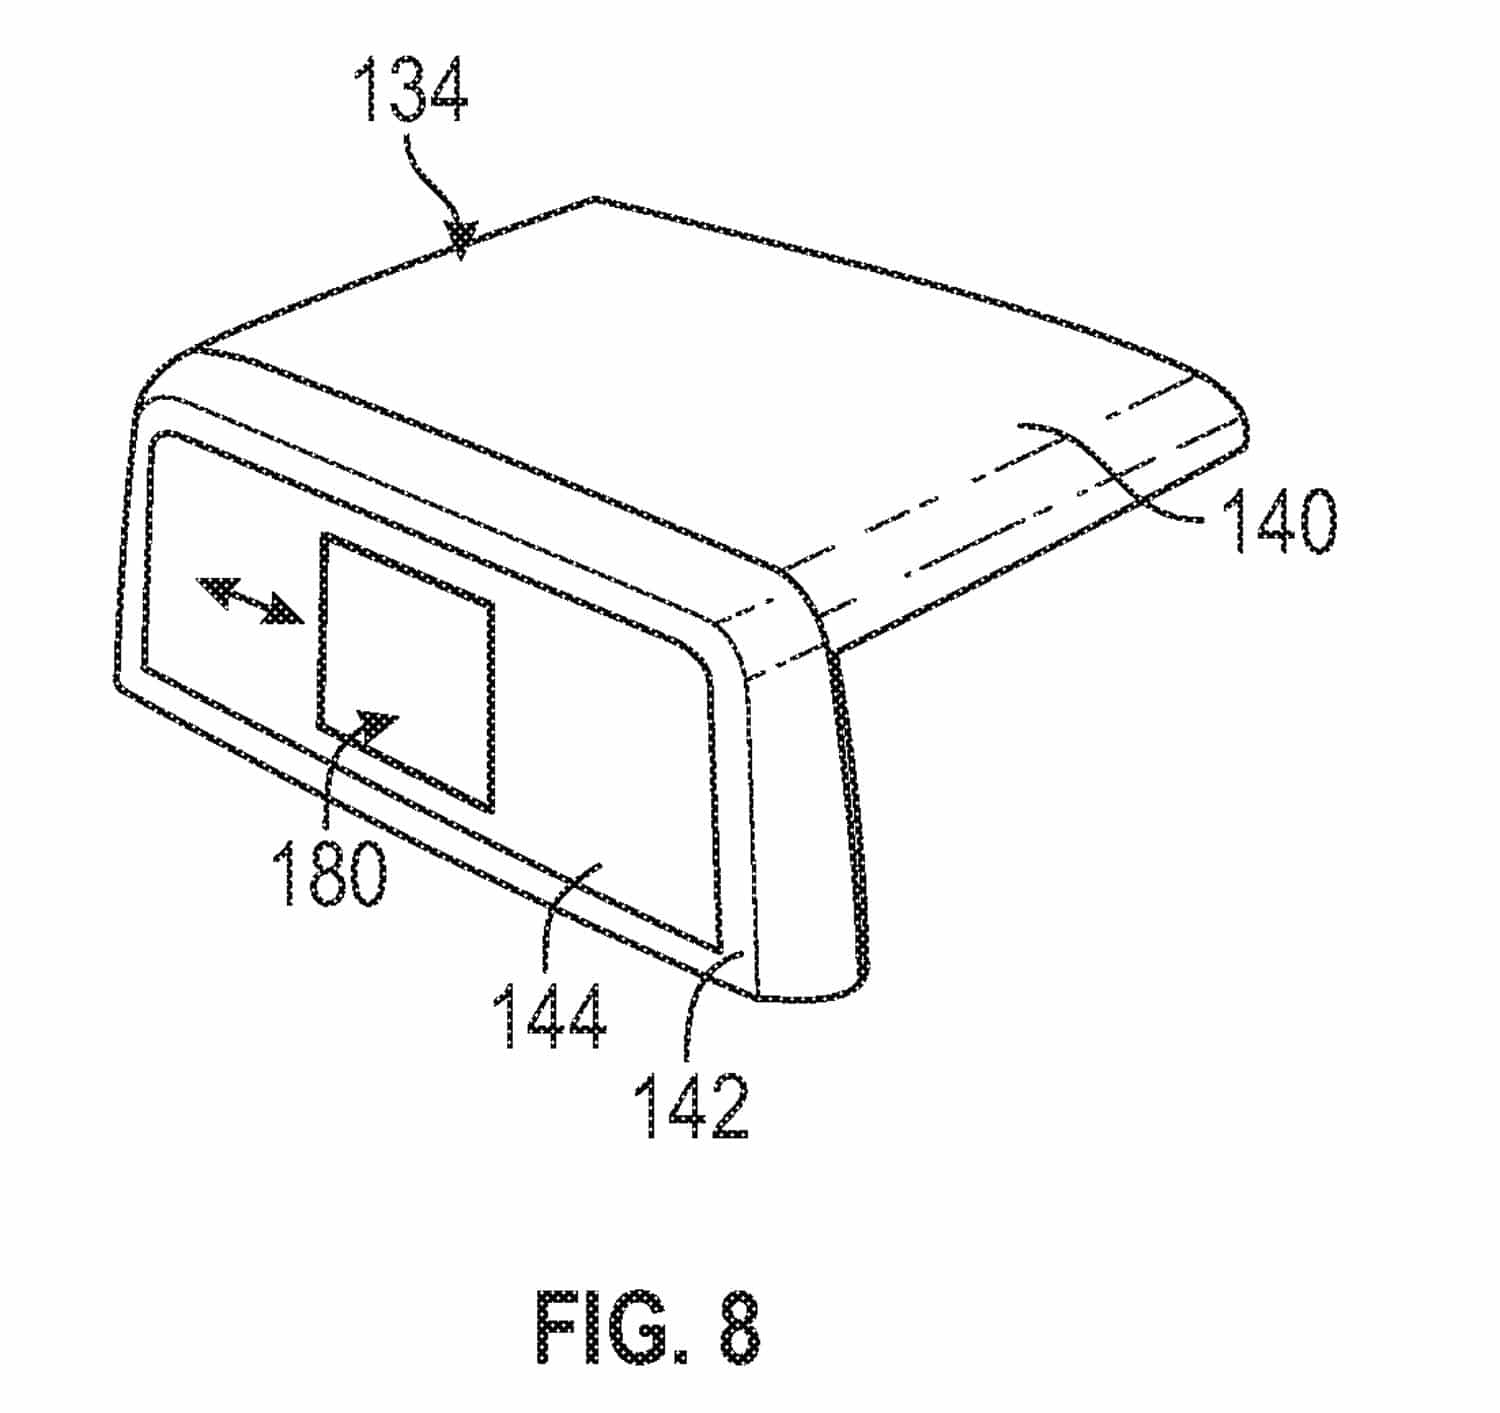 Ford-Convertible-truck-patent-1.jpg